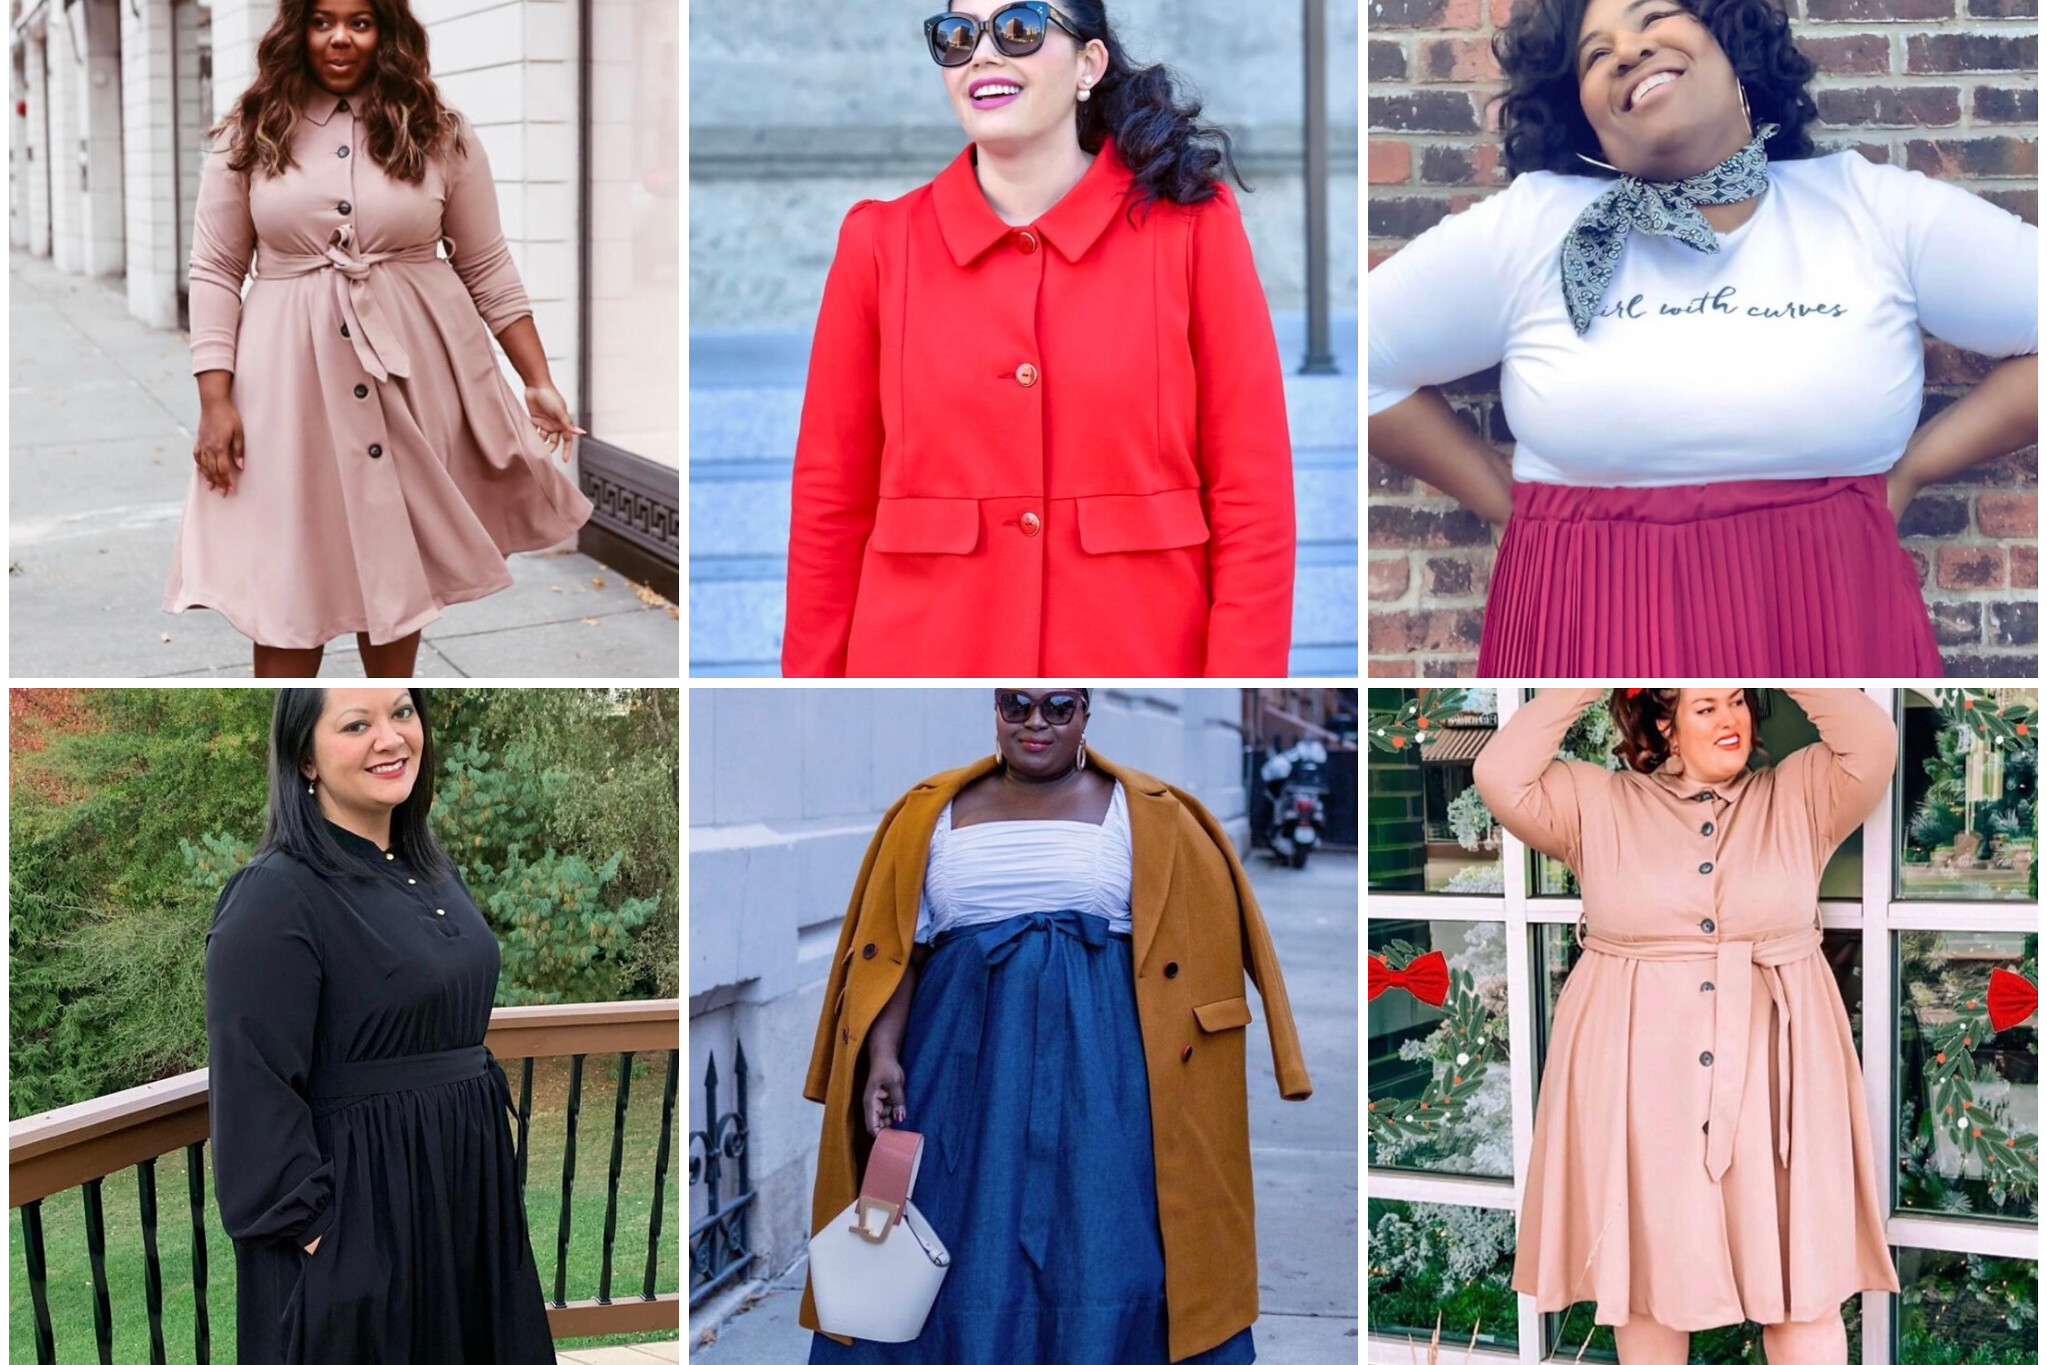 GWCstyle Winter 2020 Edition #plussizefashion #curvyfashion #curvyconfidence #bopo #girlwithcurves